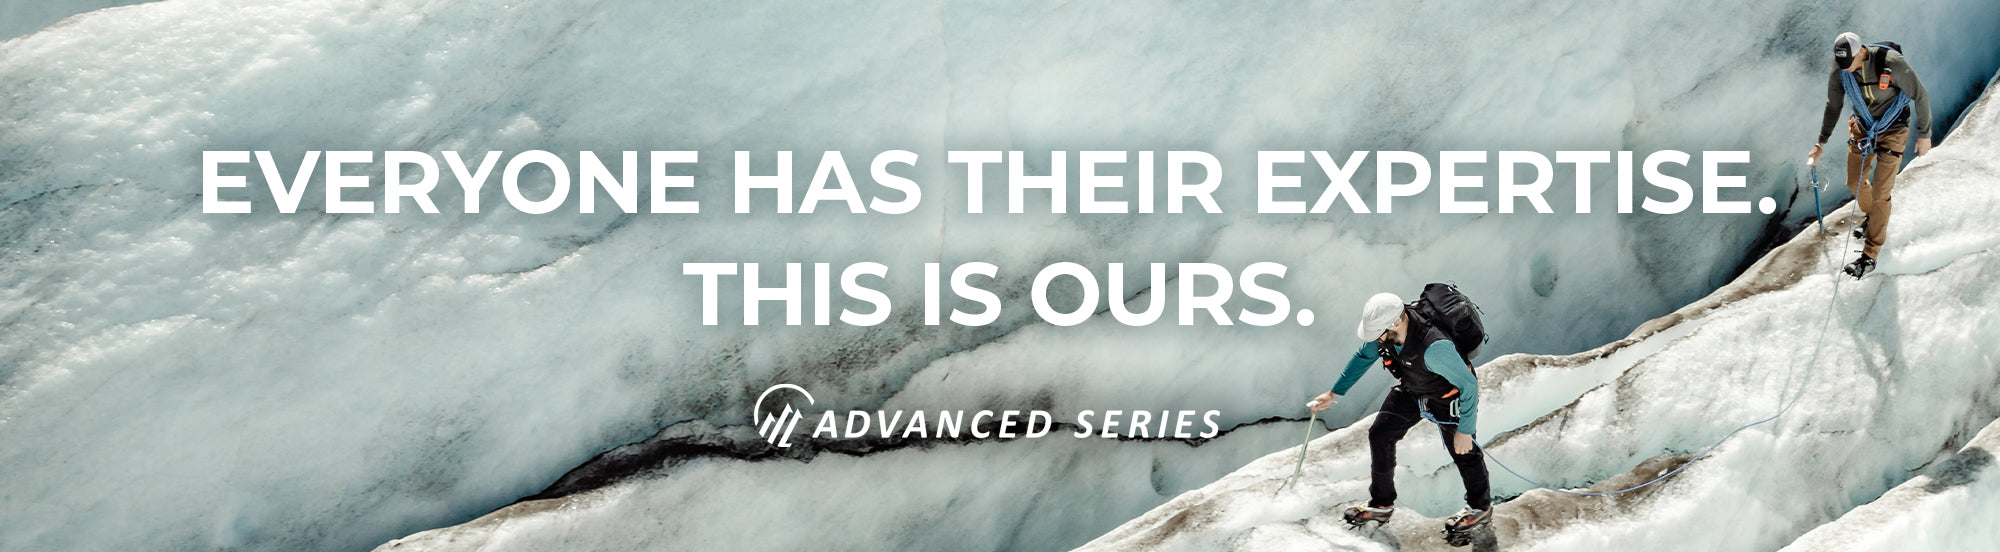 Everyone has their expertise. This is ours. Advanced Series